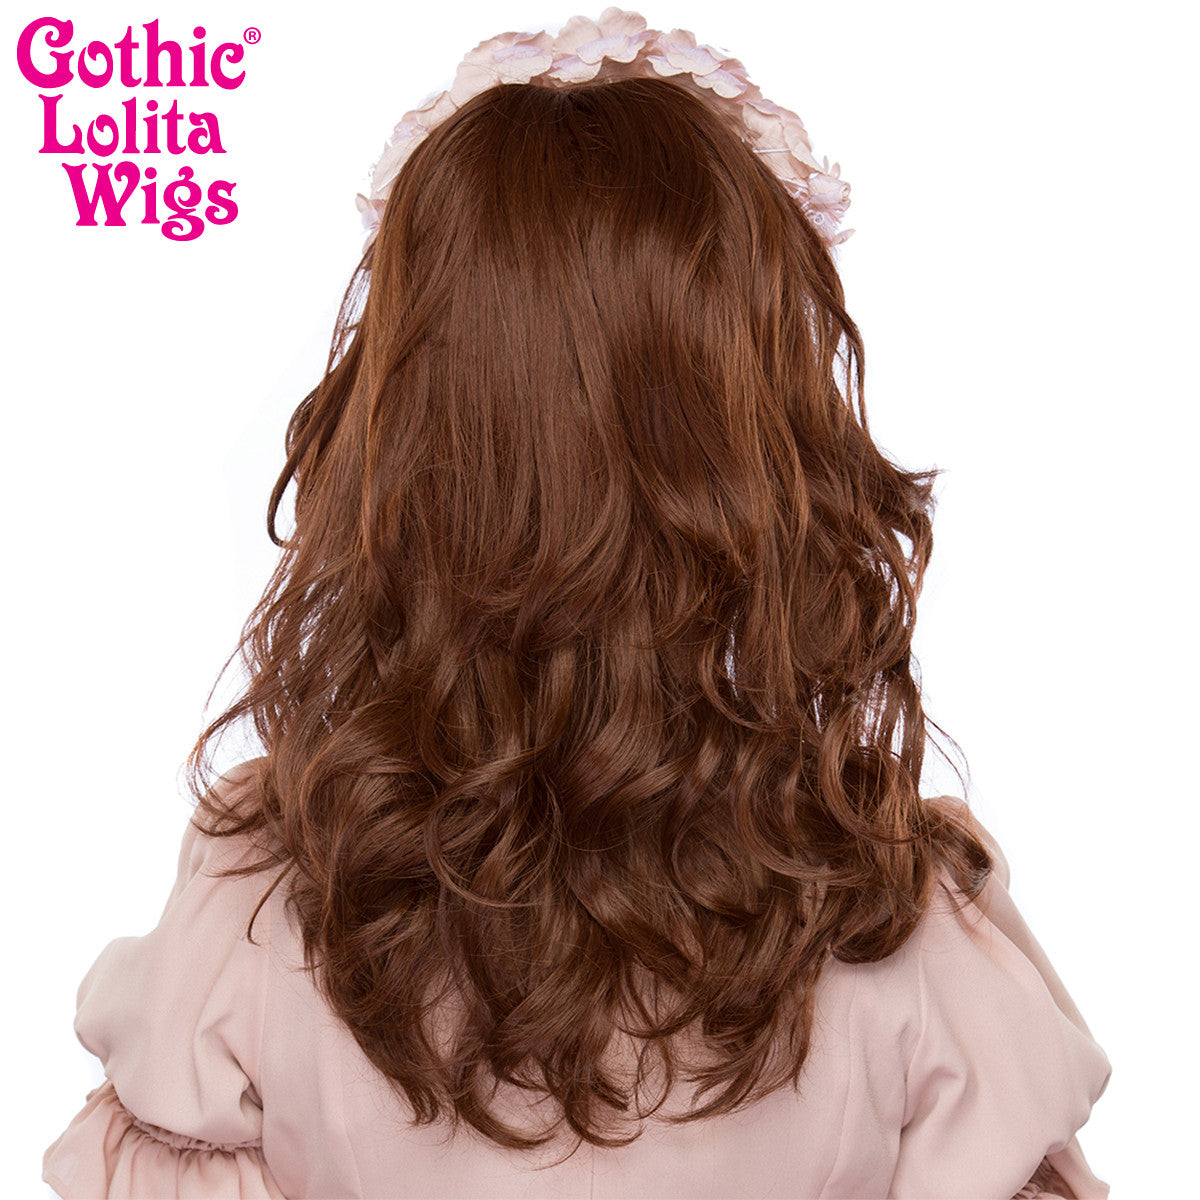 Gothic Lolita Wigs® <br>Girly Girl Collection - Chocolate Brown Mix -00418